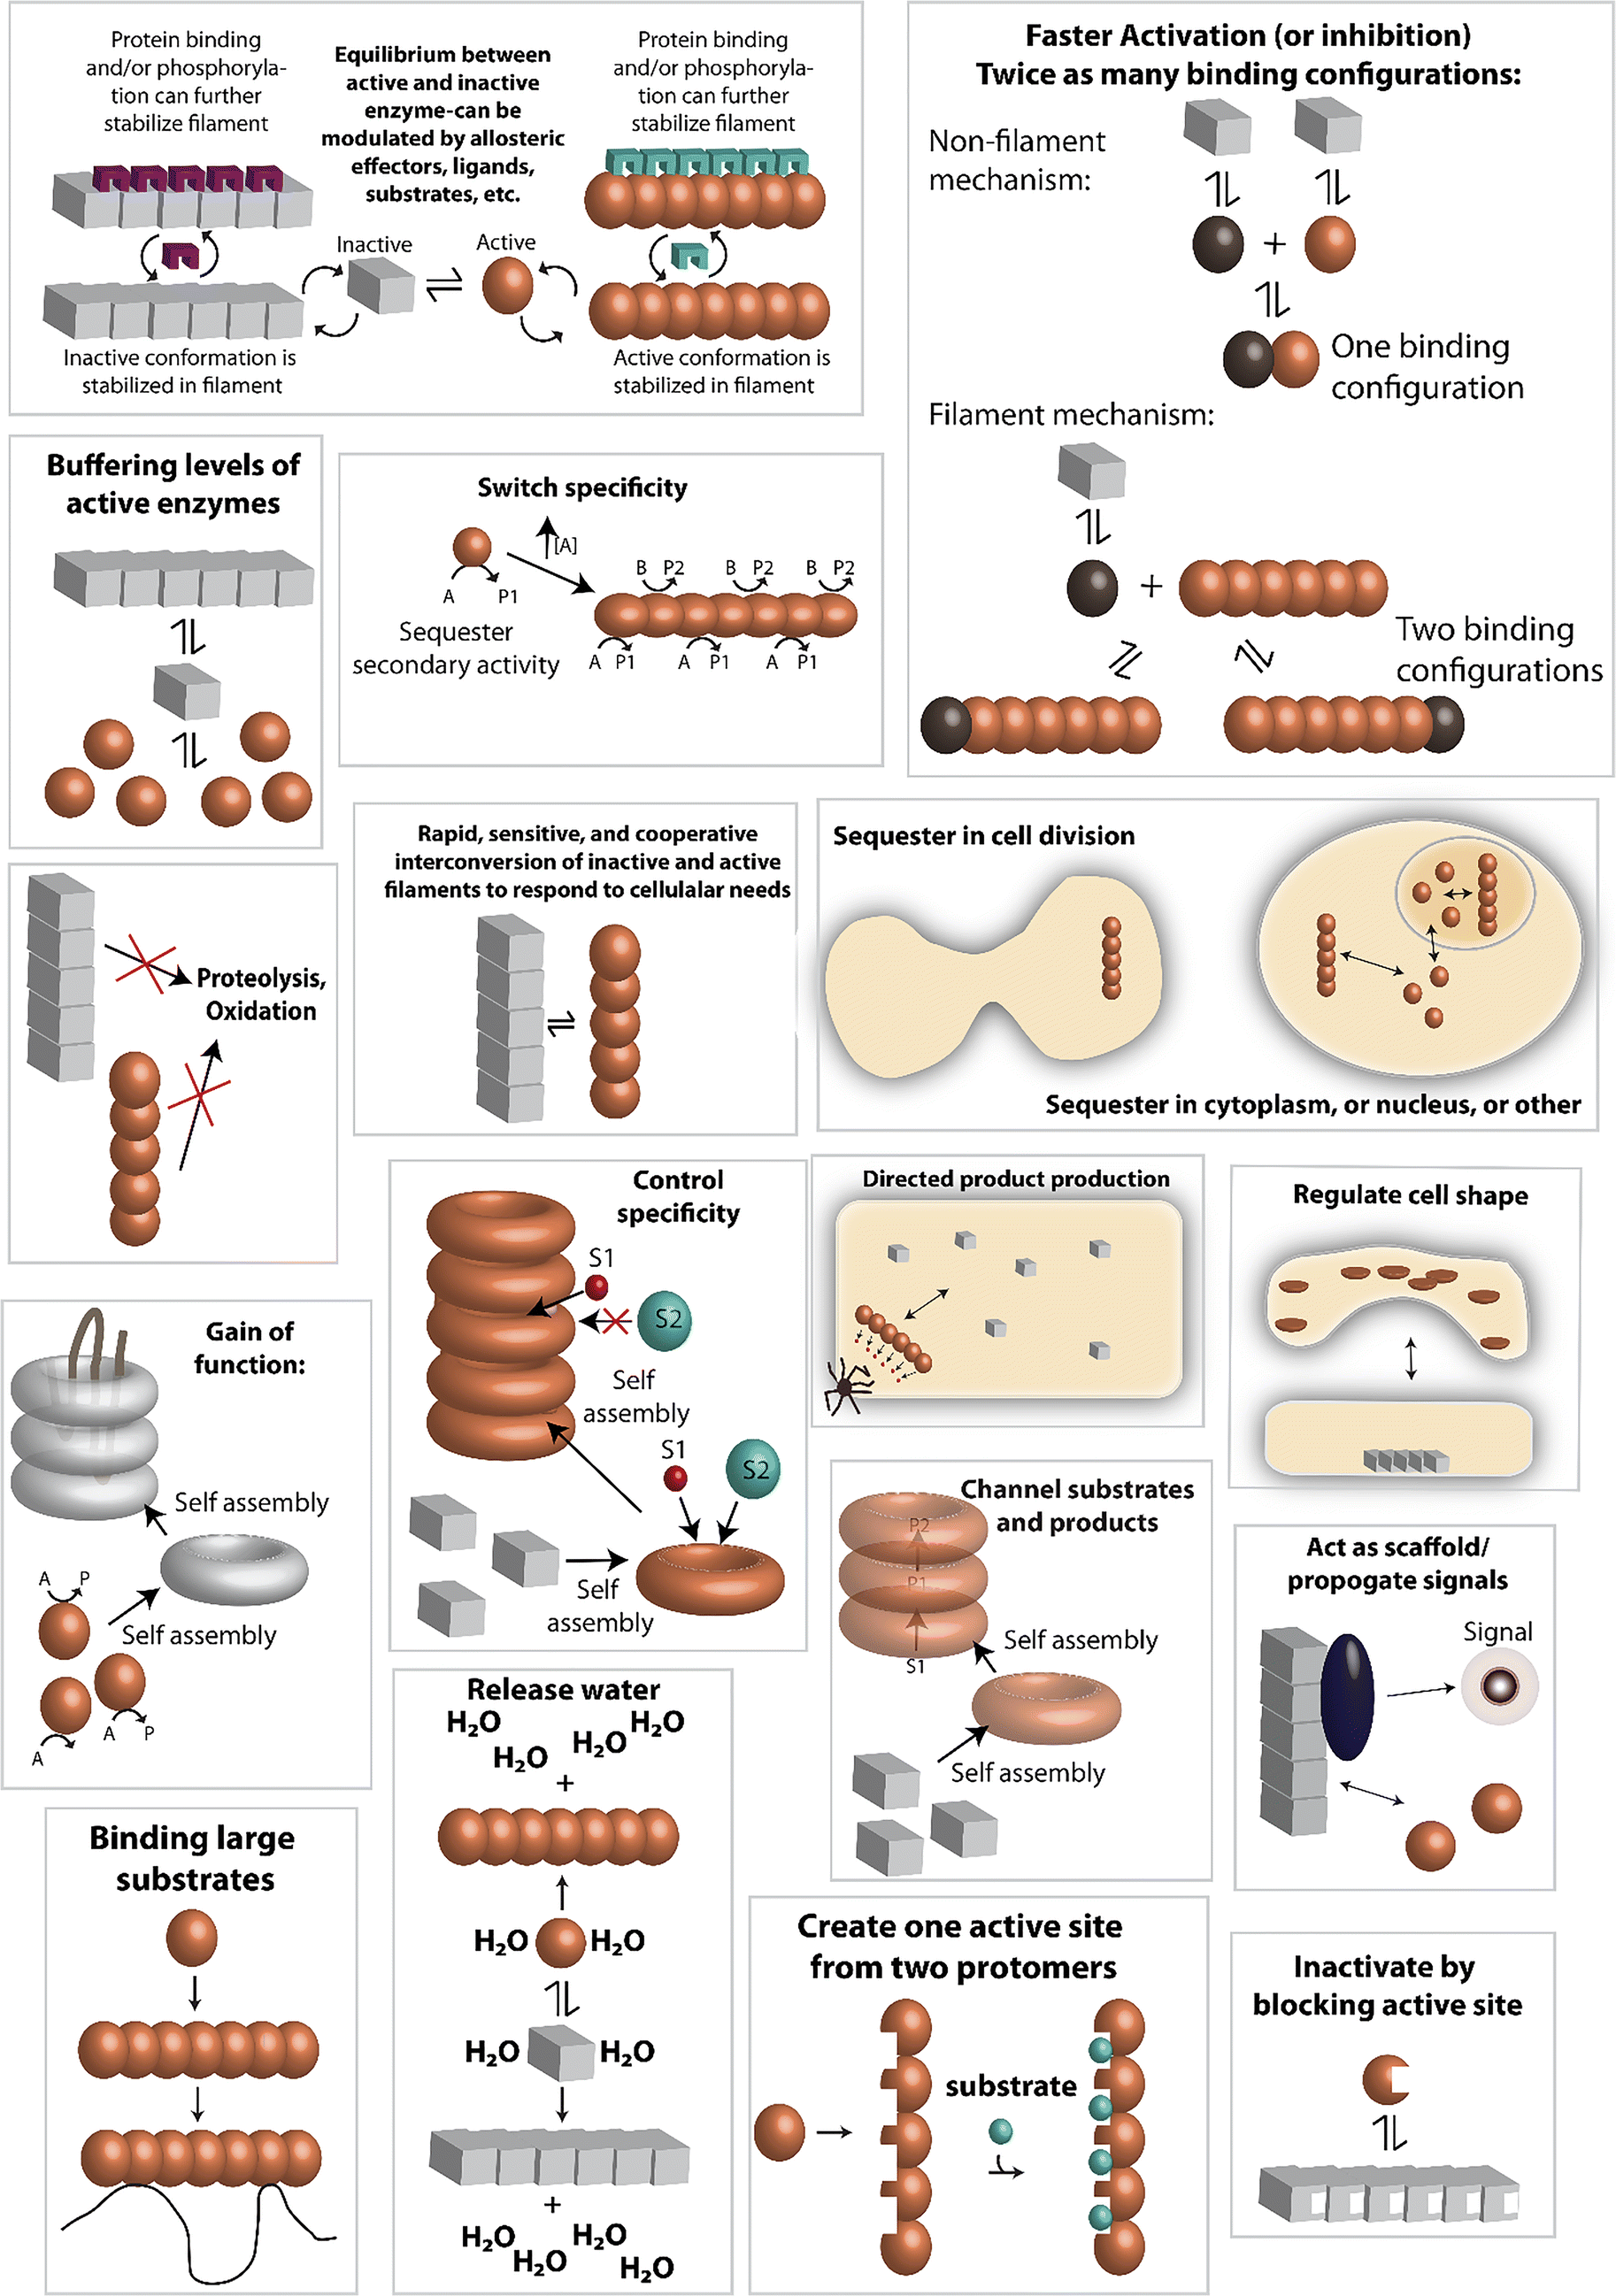 Structures, functions, and mechanisms of filament forming